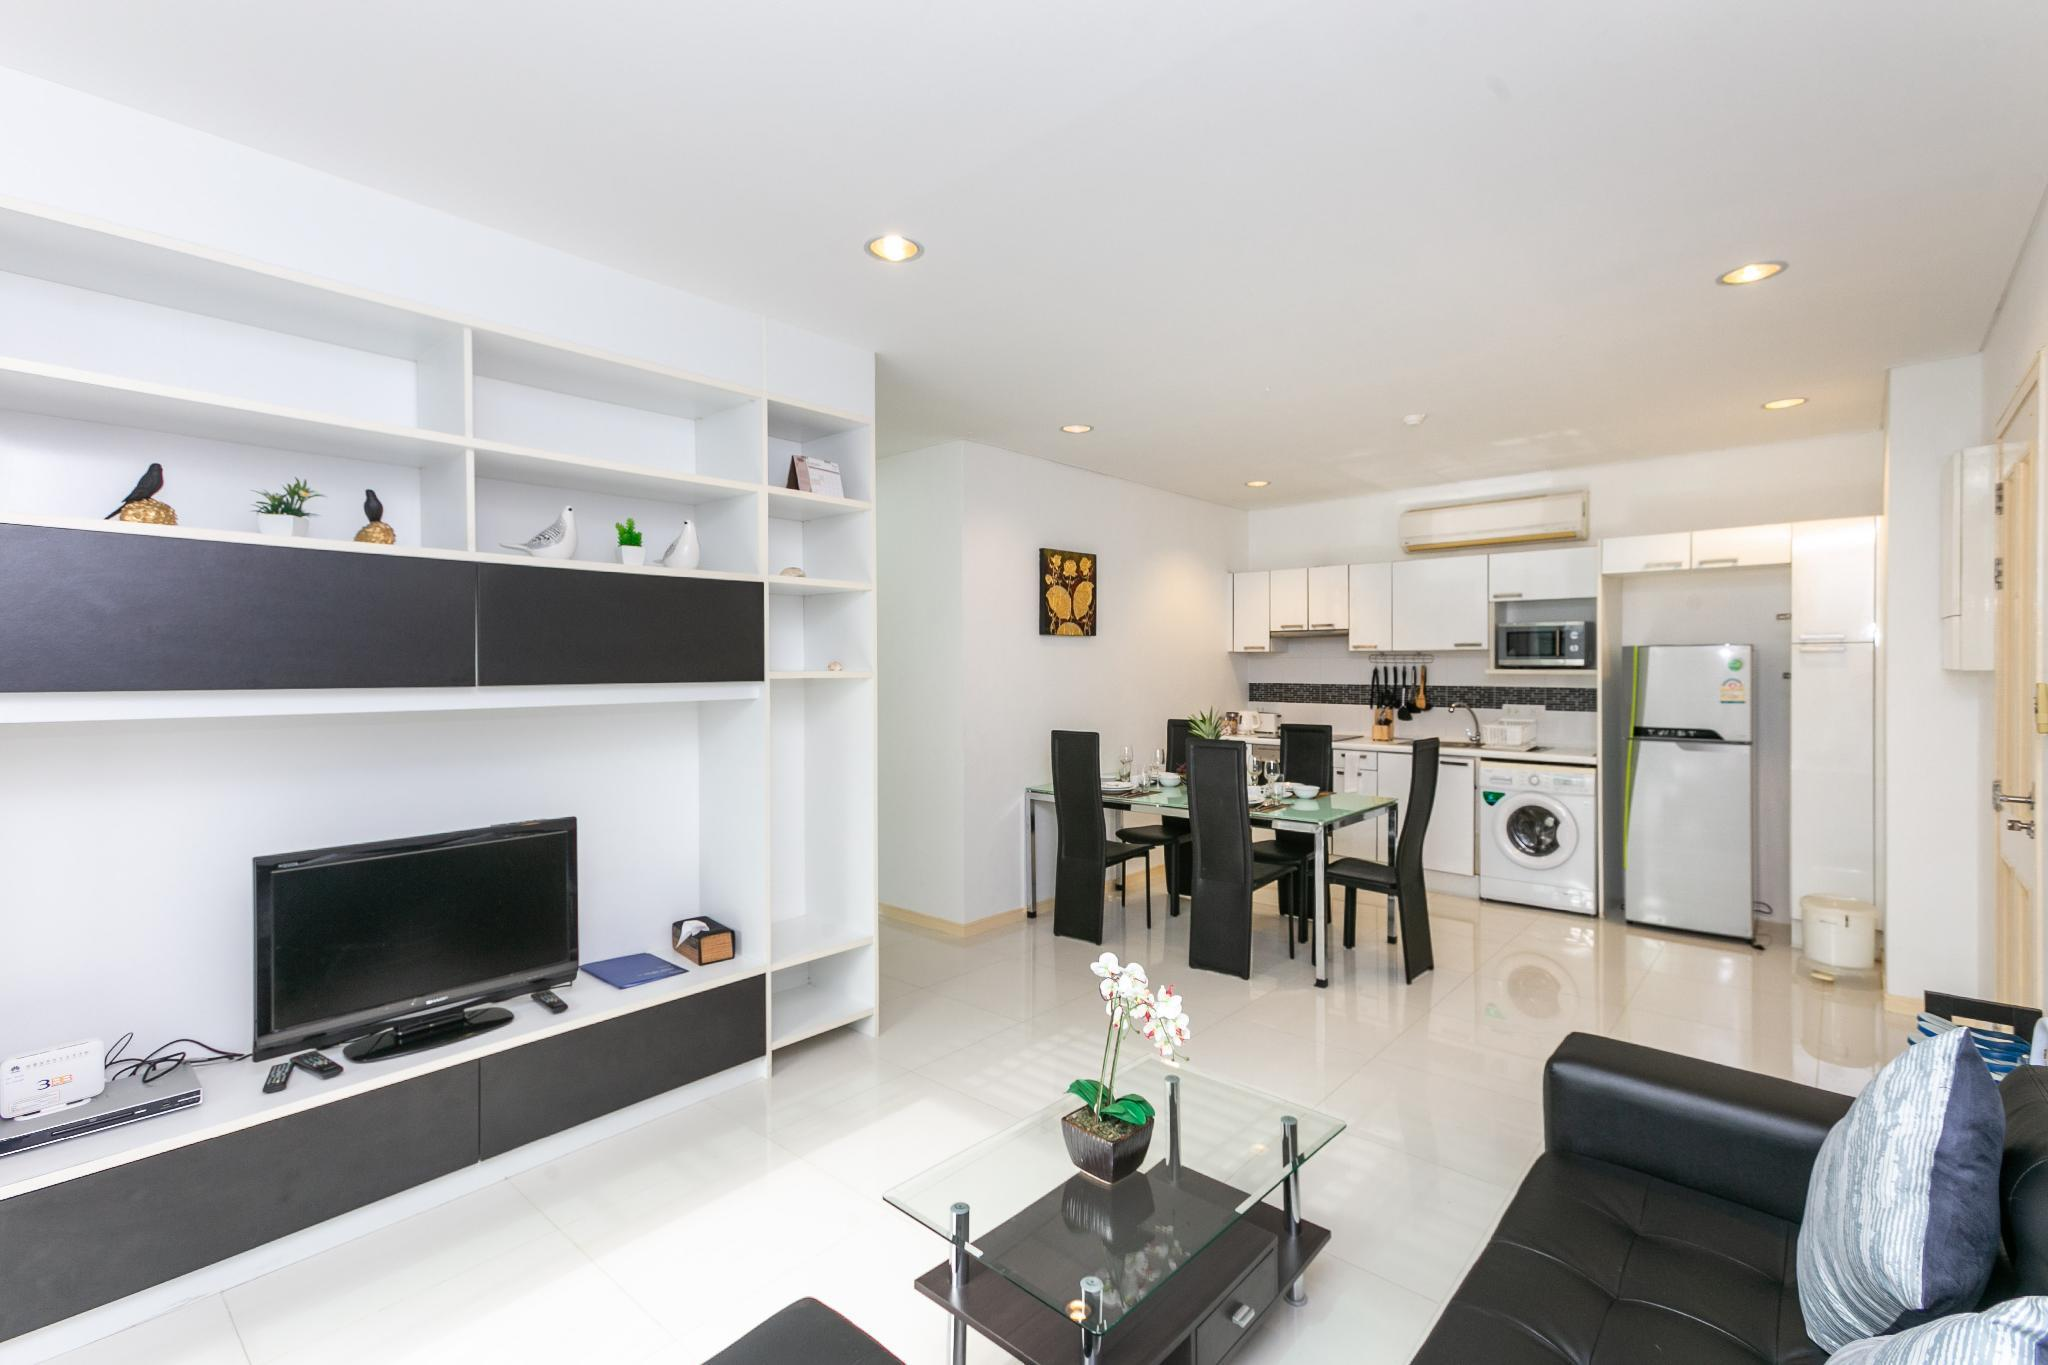 3 Bedrooms Apartment in The Heart of Kamala 3 Bedrooms Apartment in The Heart of Kamala